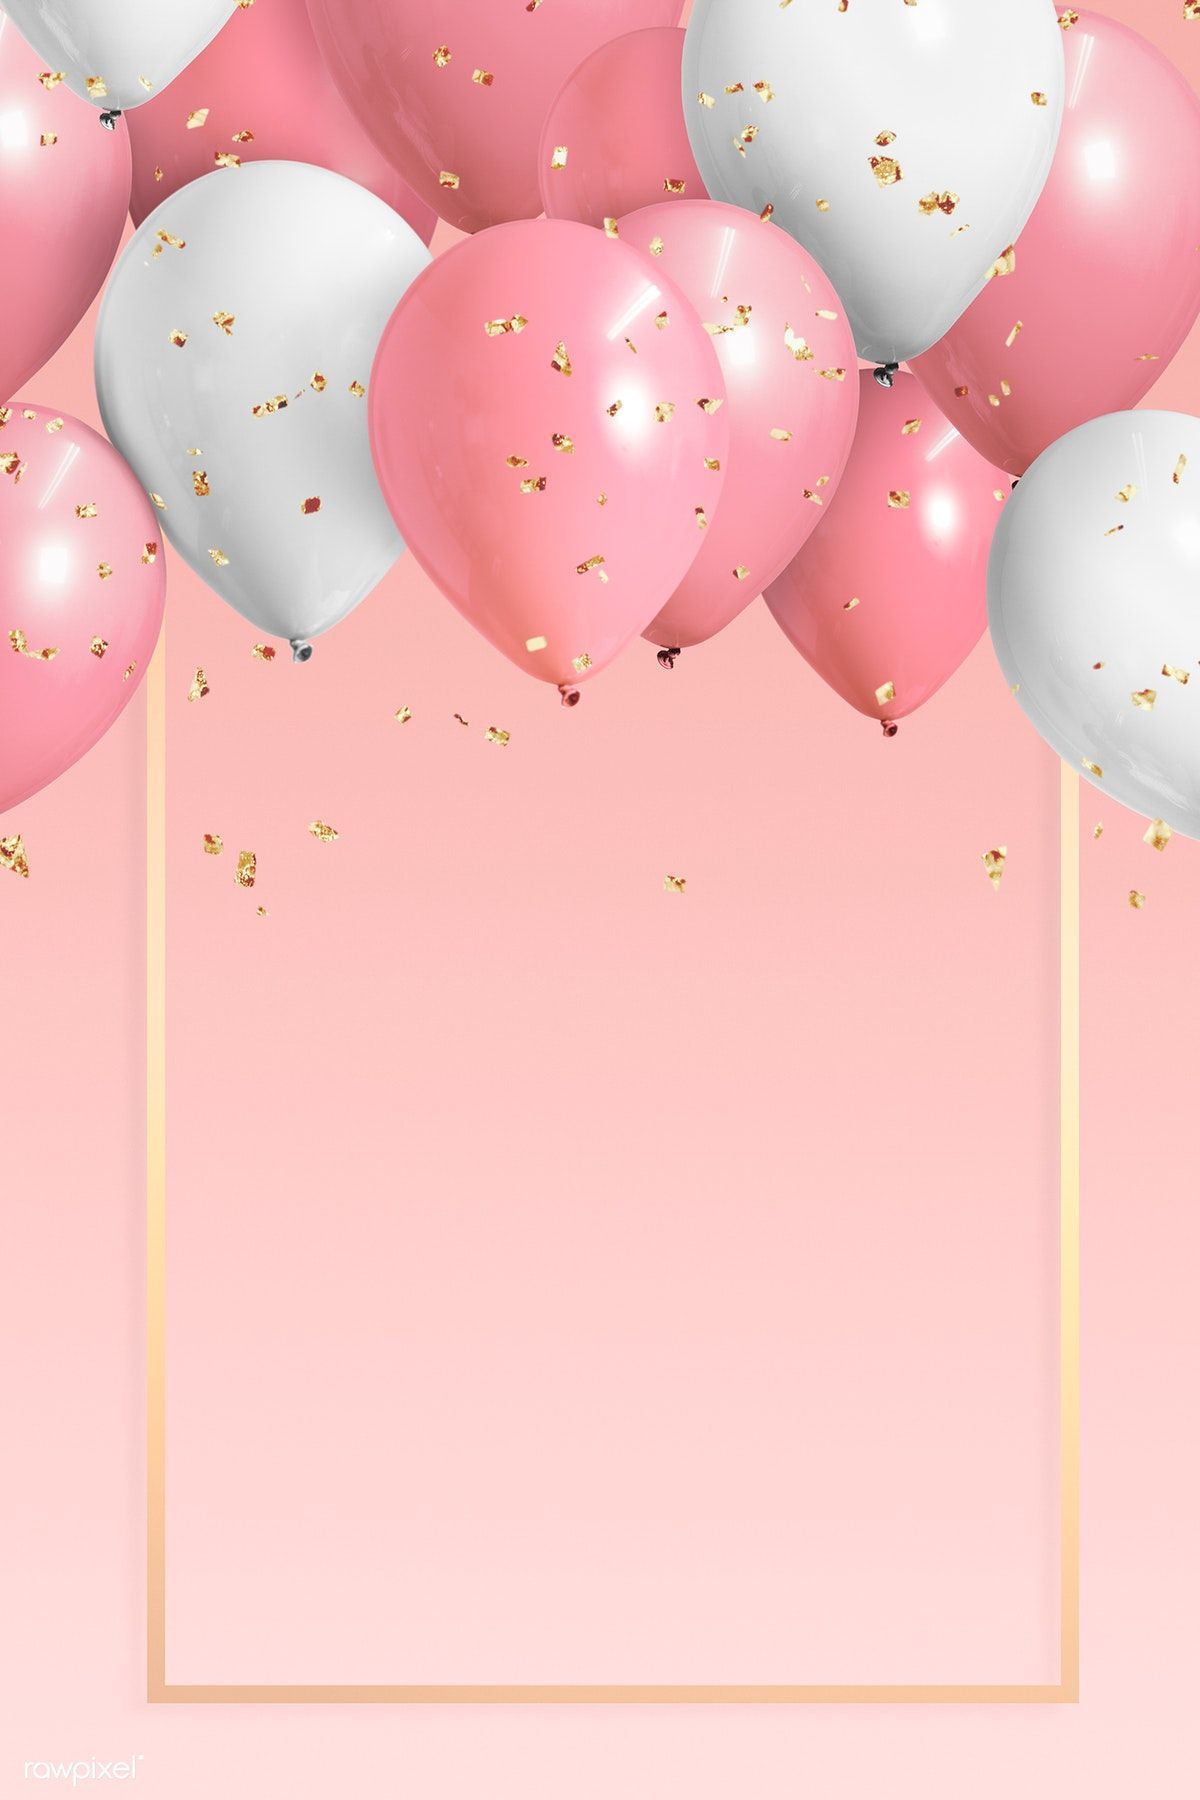 Download Premium Illustration Of Golden Frame Balloons On A Pink